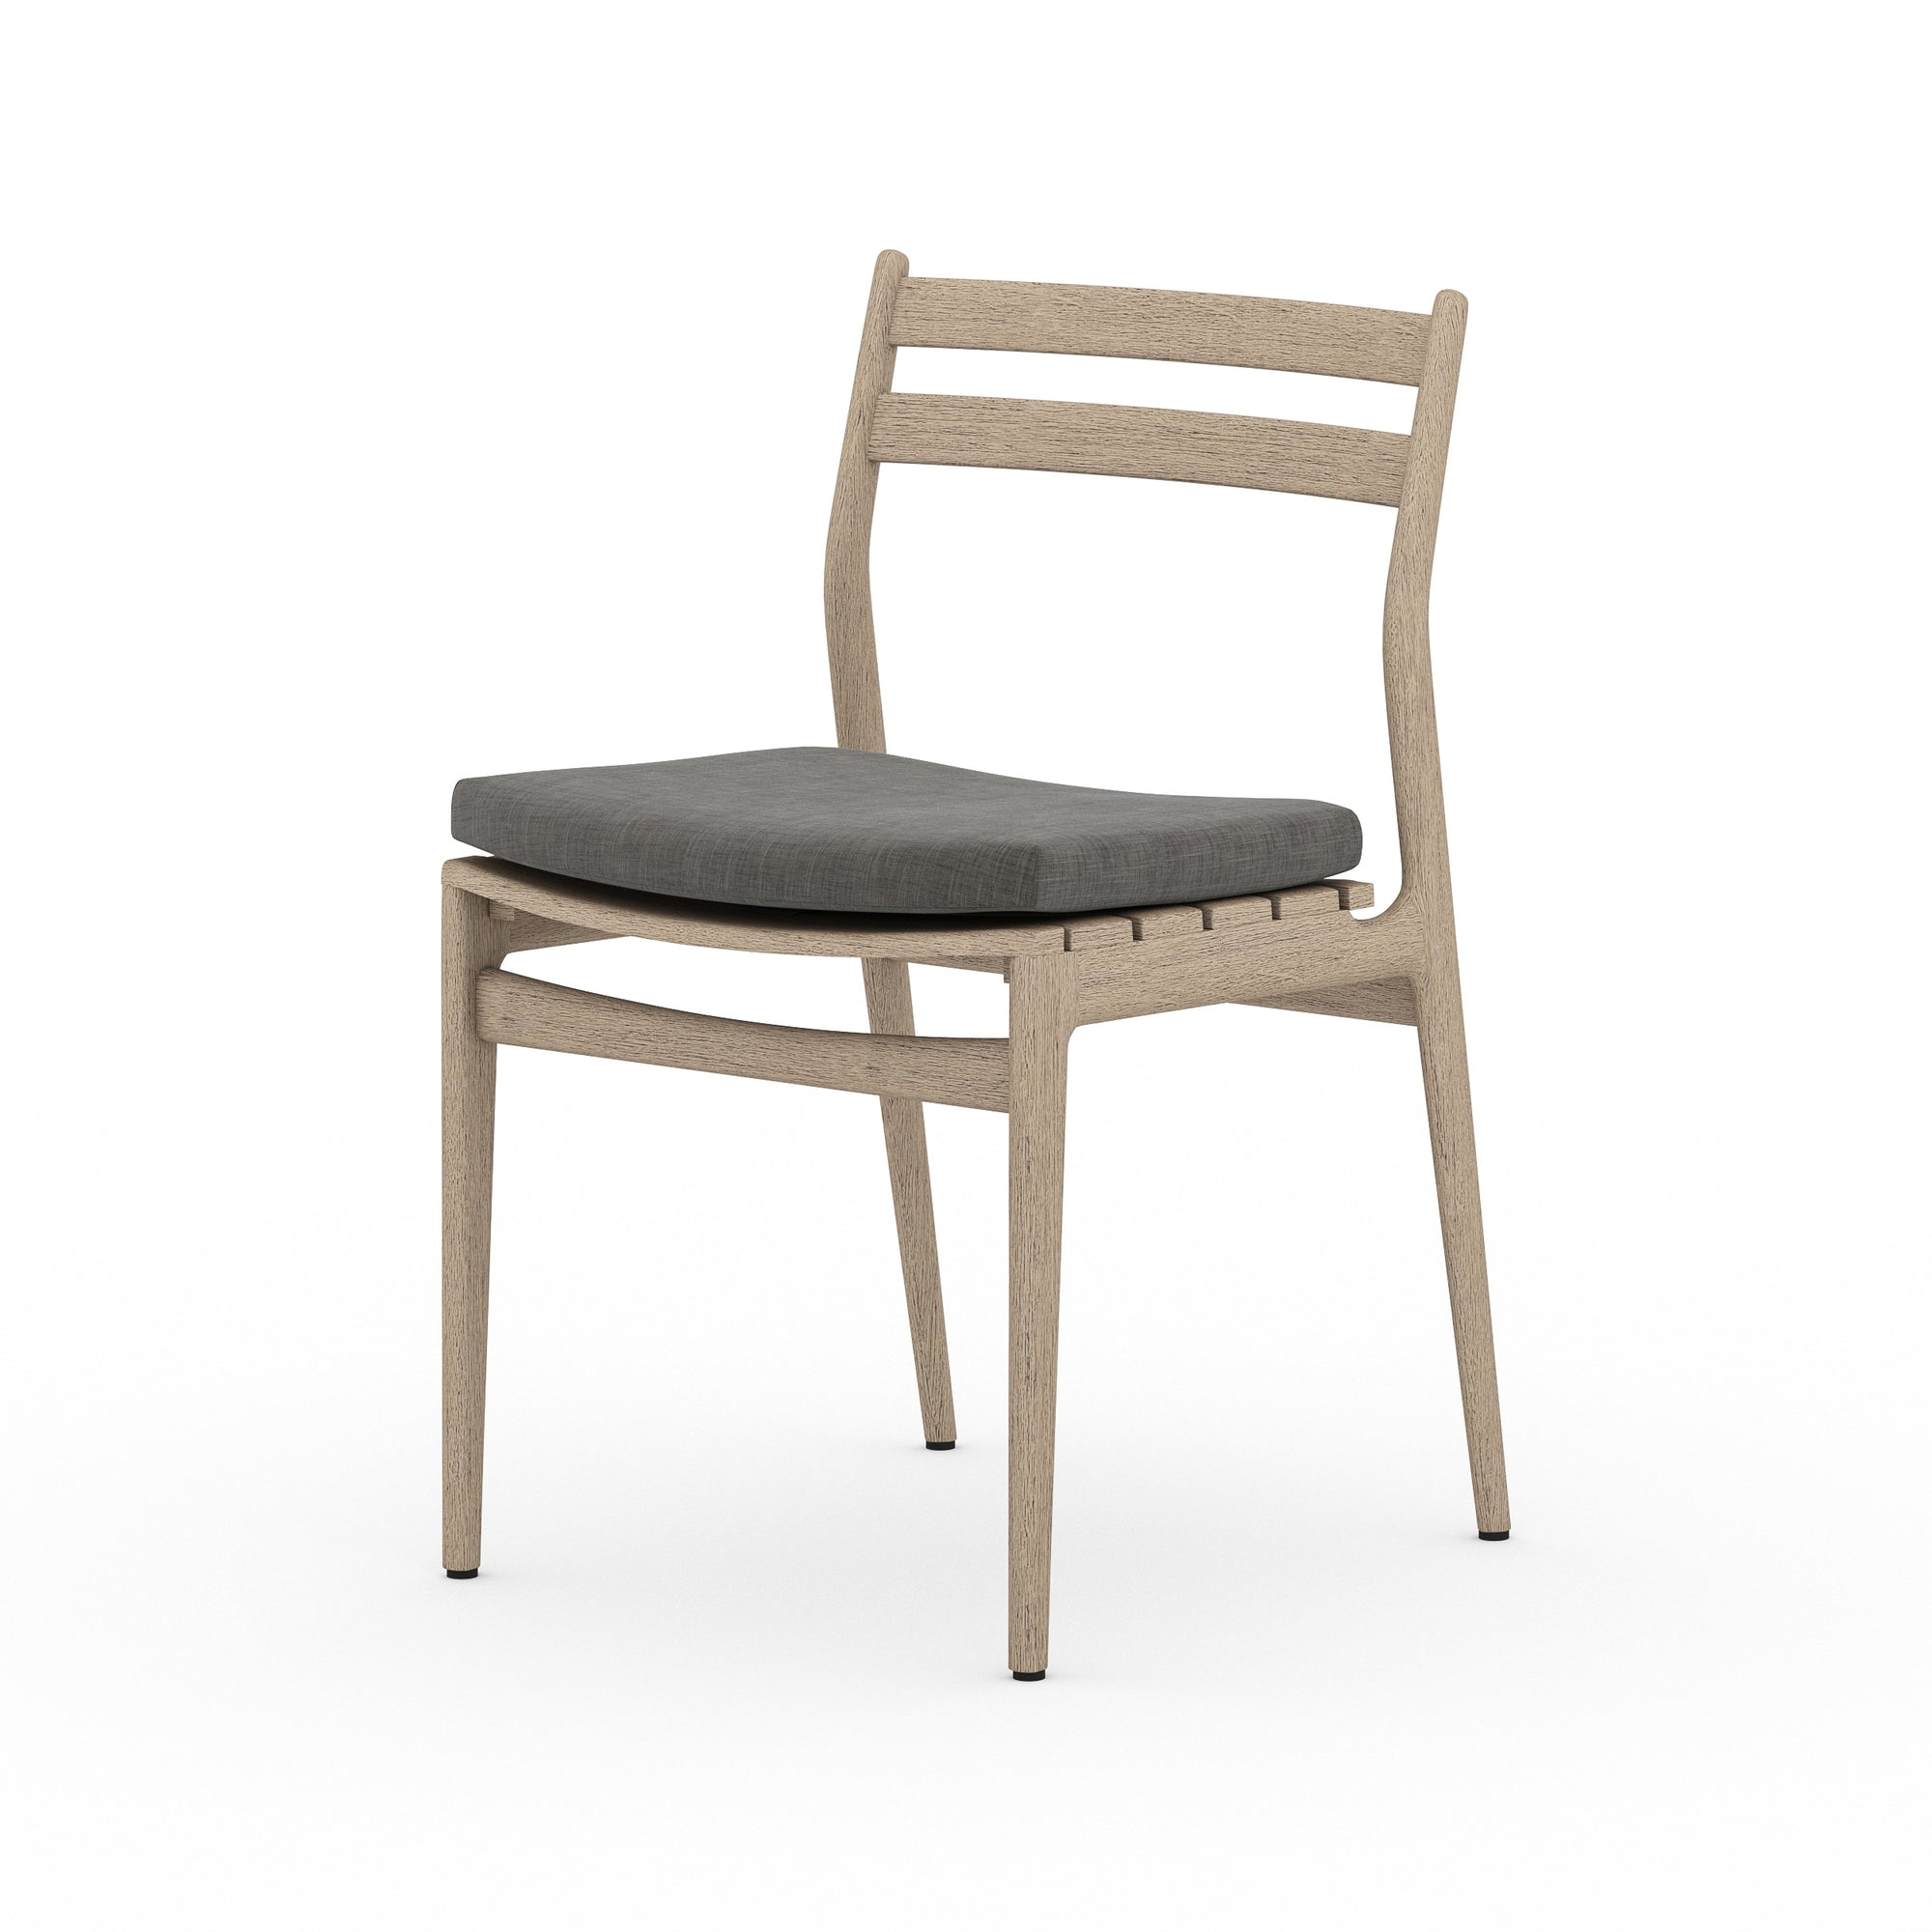 Atherton Outdoor Dining Chair - Brown/Char